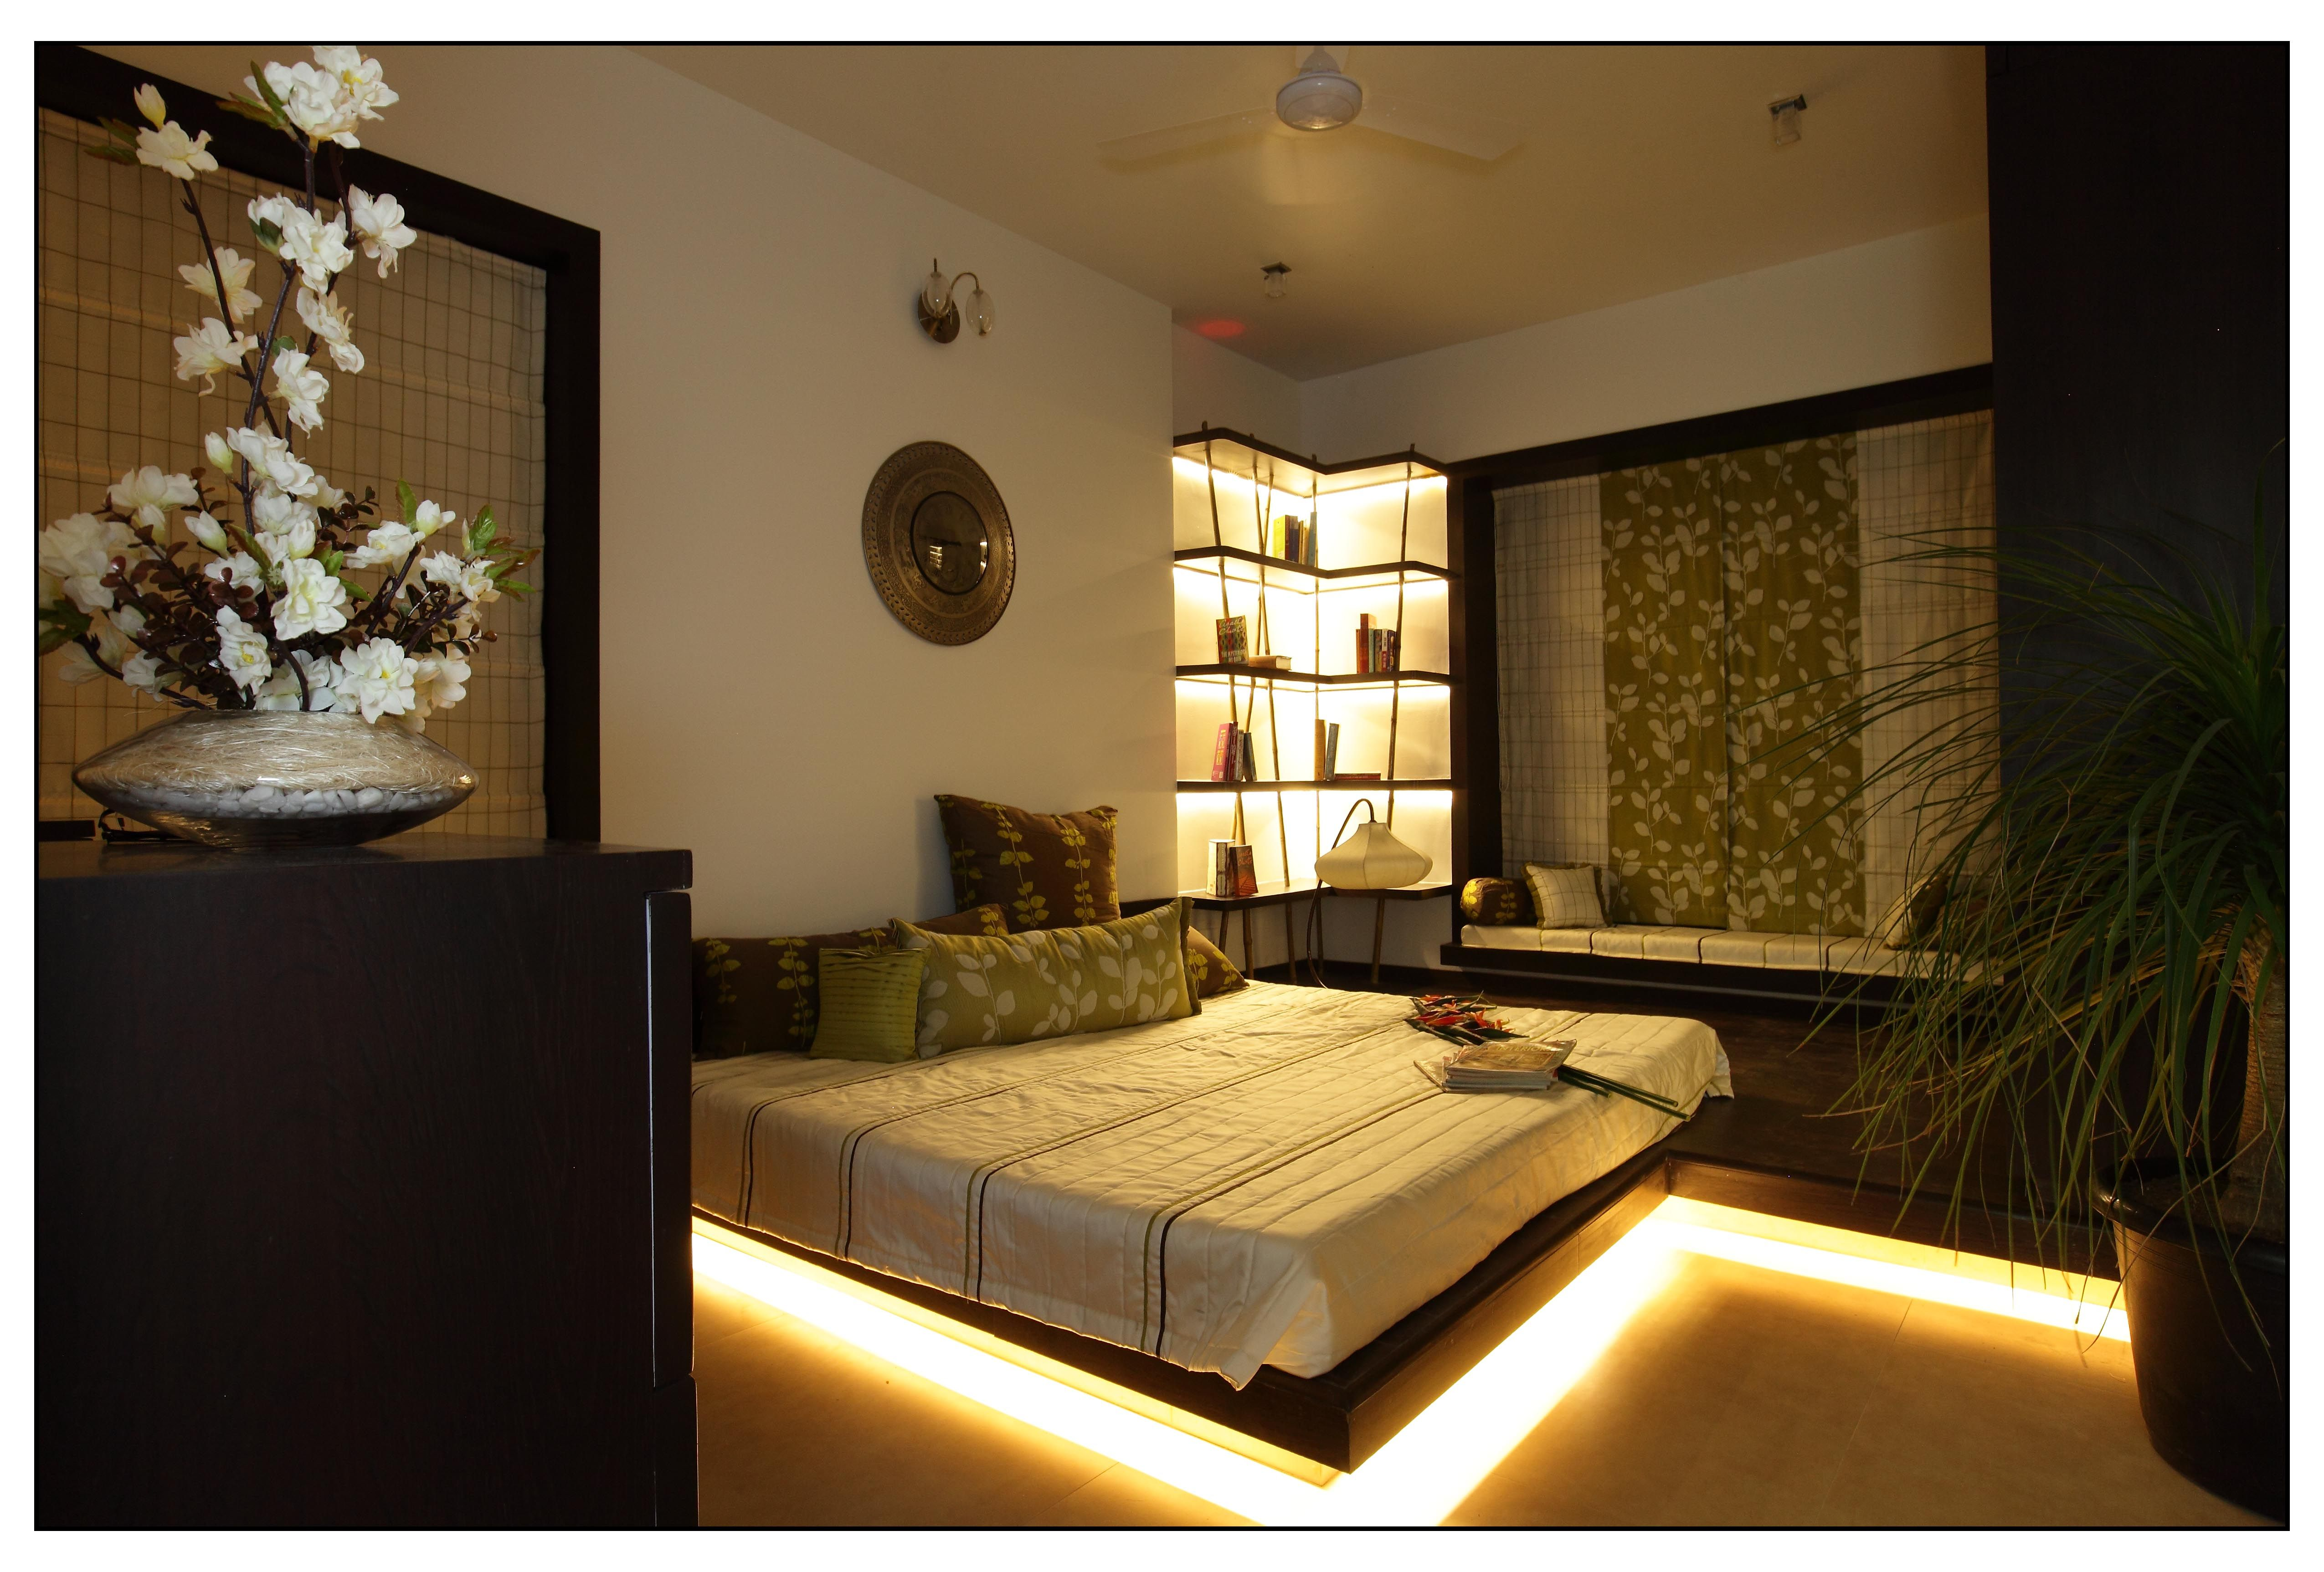 panchal interior designers in bangalore is planning furnishing